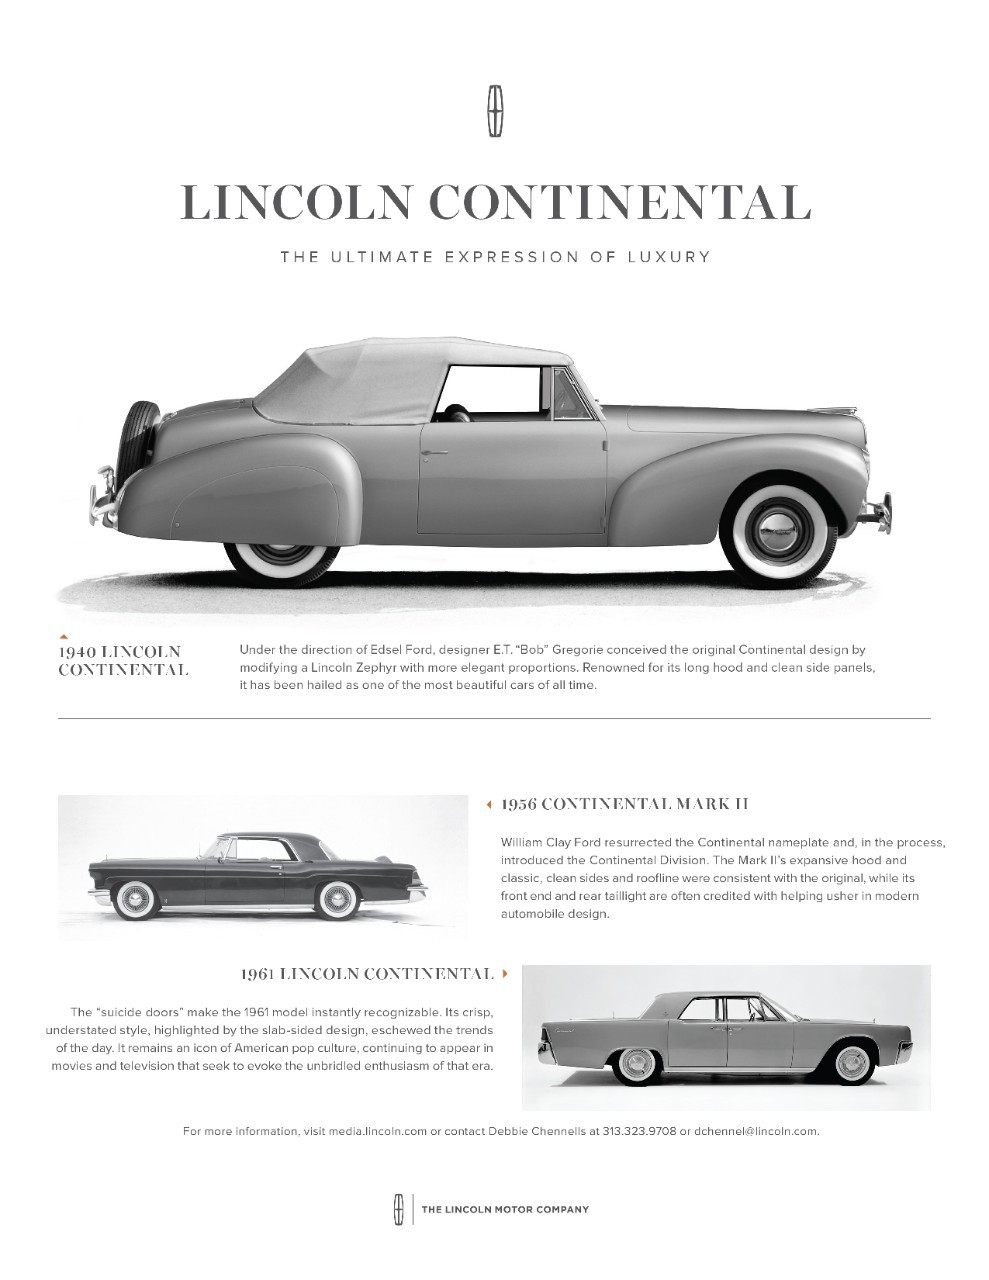 2017 Lincoln Continental To Replace 2016 Lincoln Mks In Late Spring